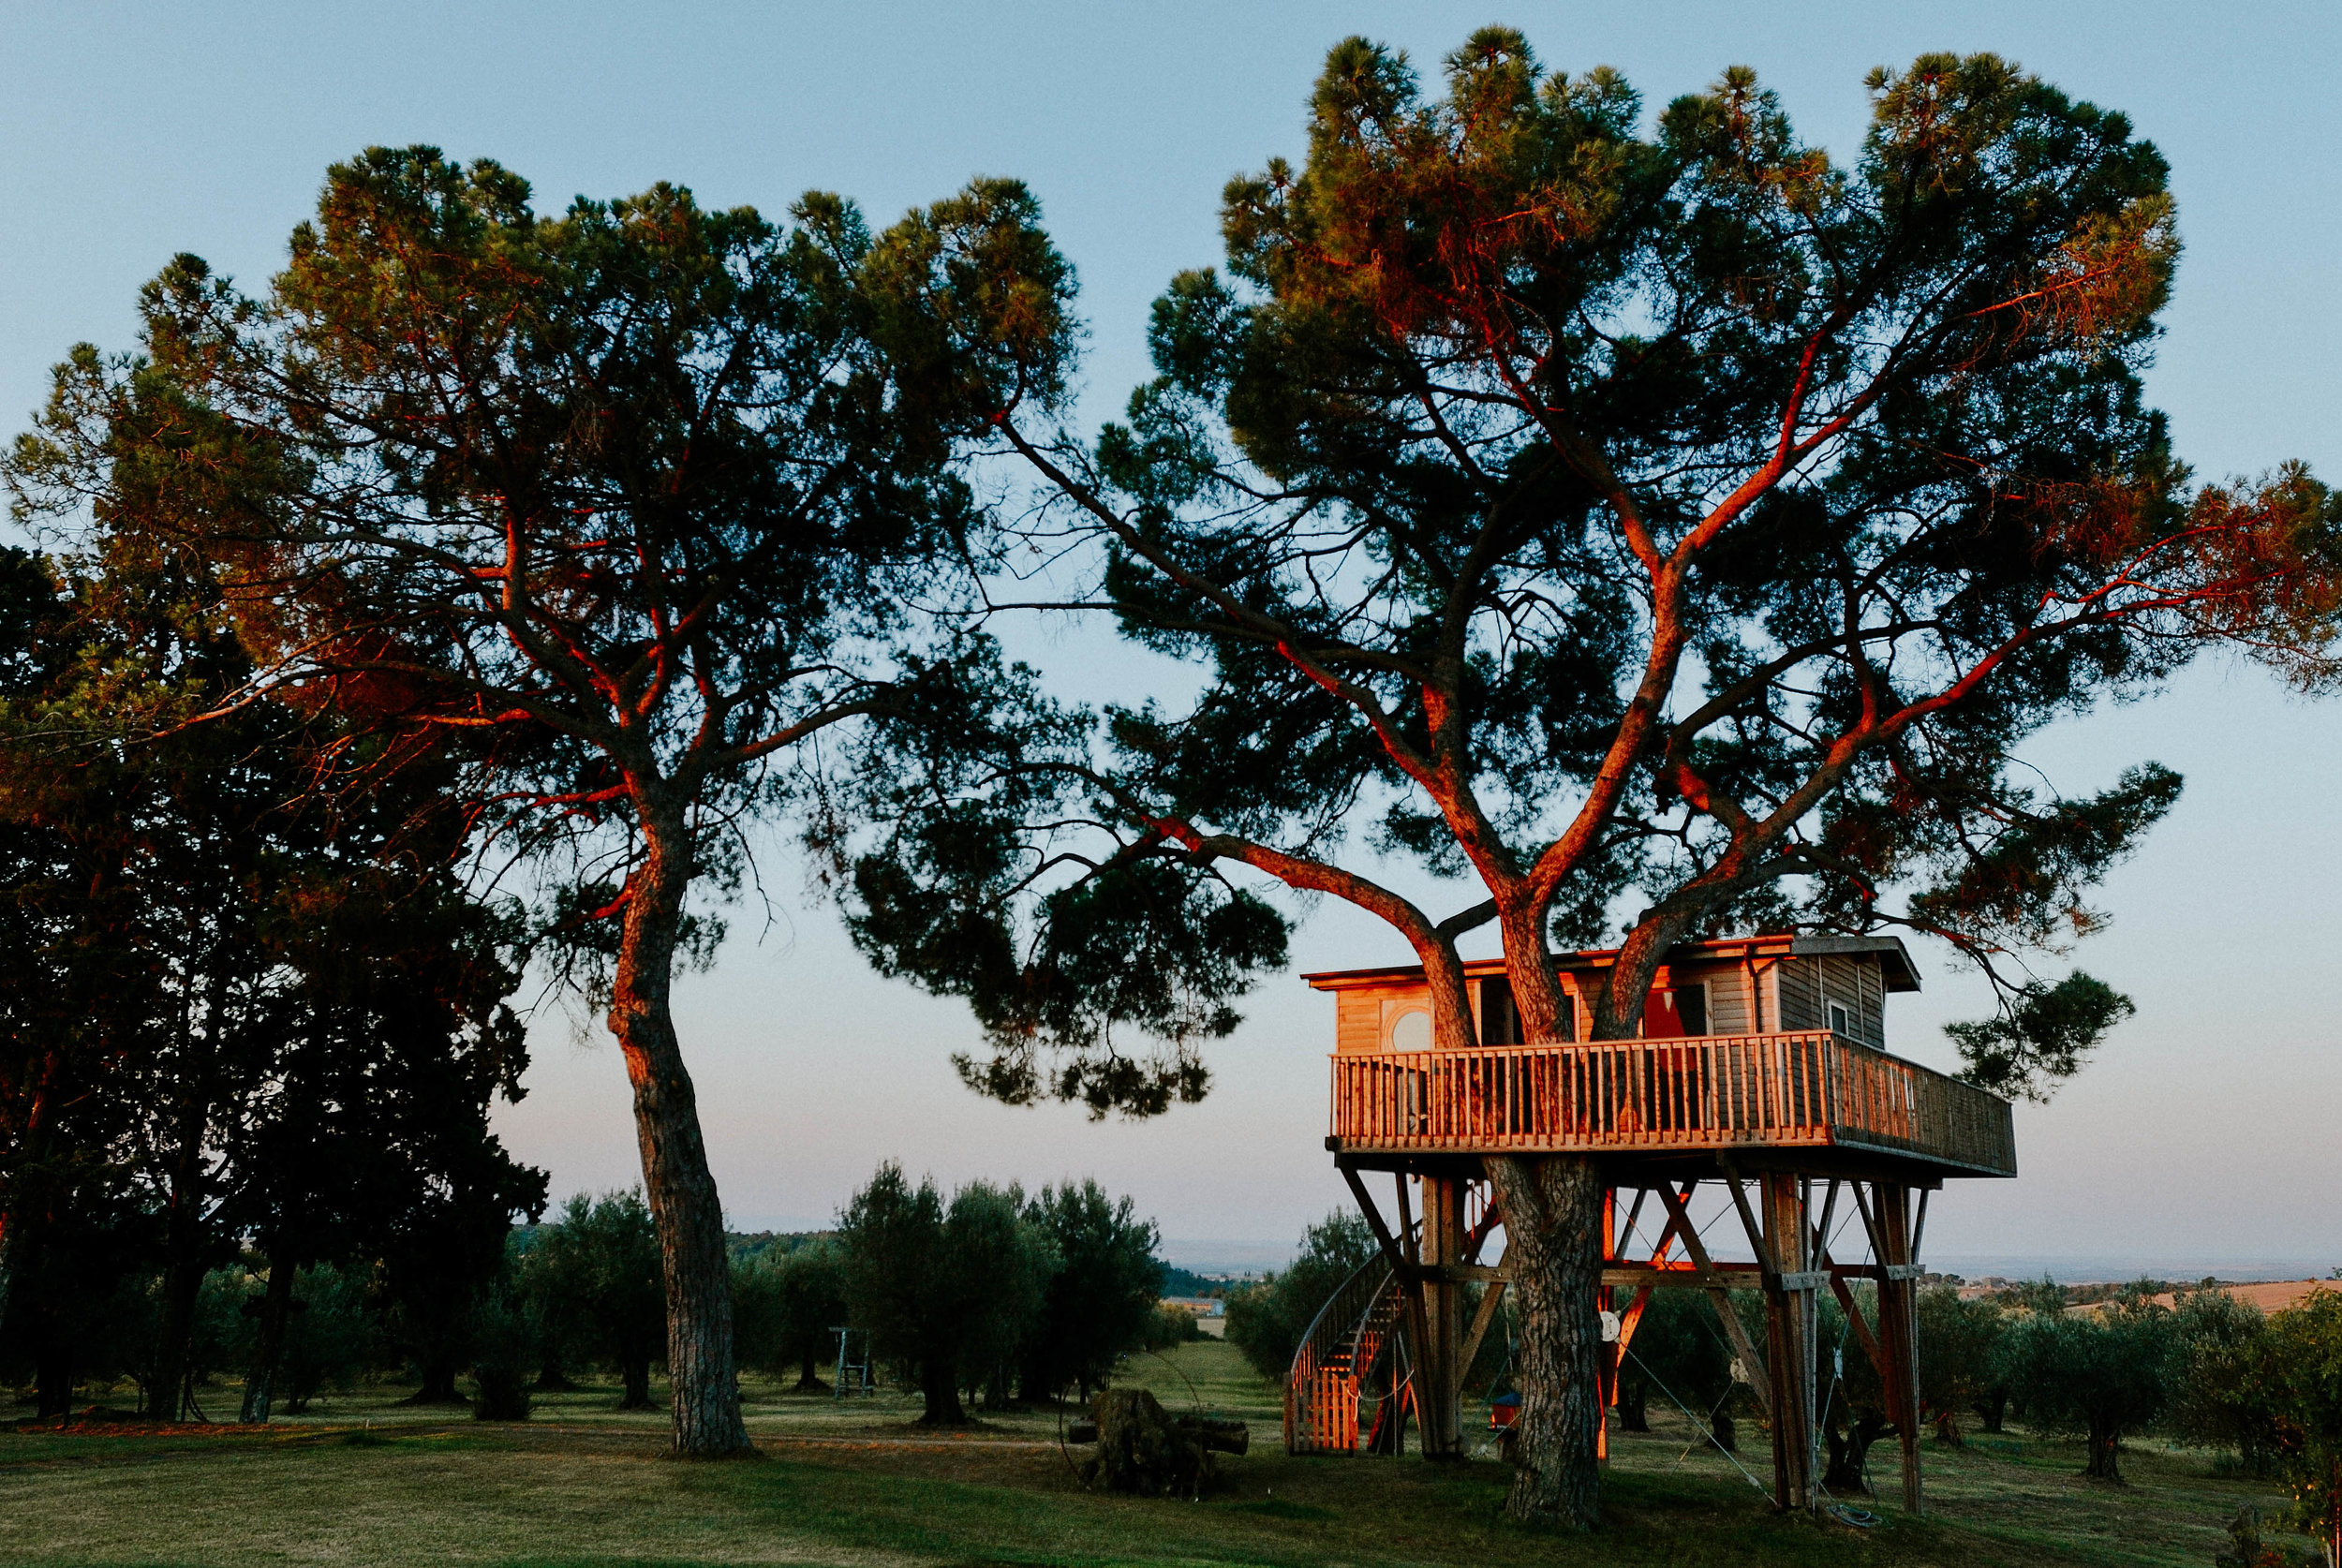 la-piantata-treehouse-project-we-travel